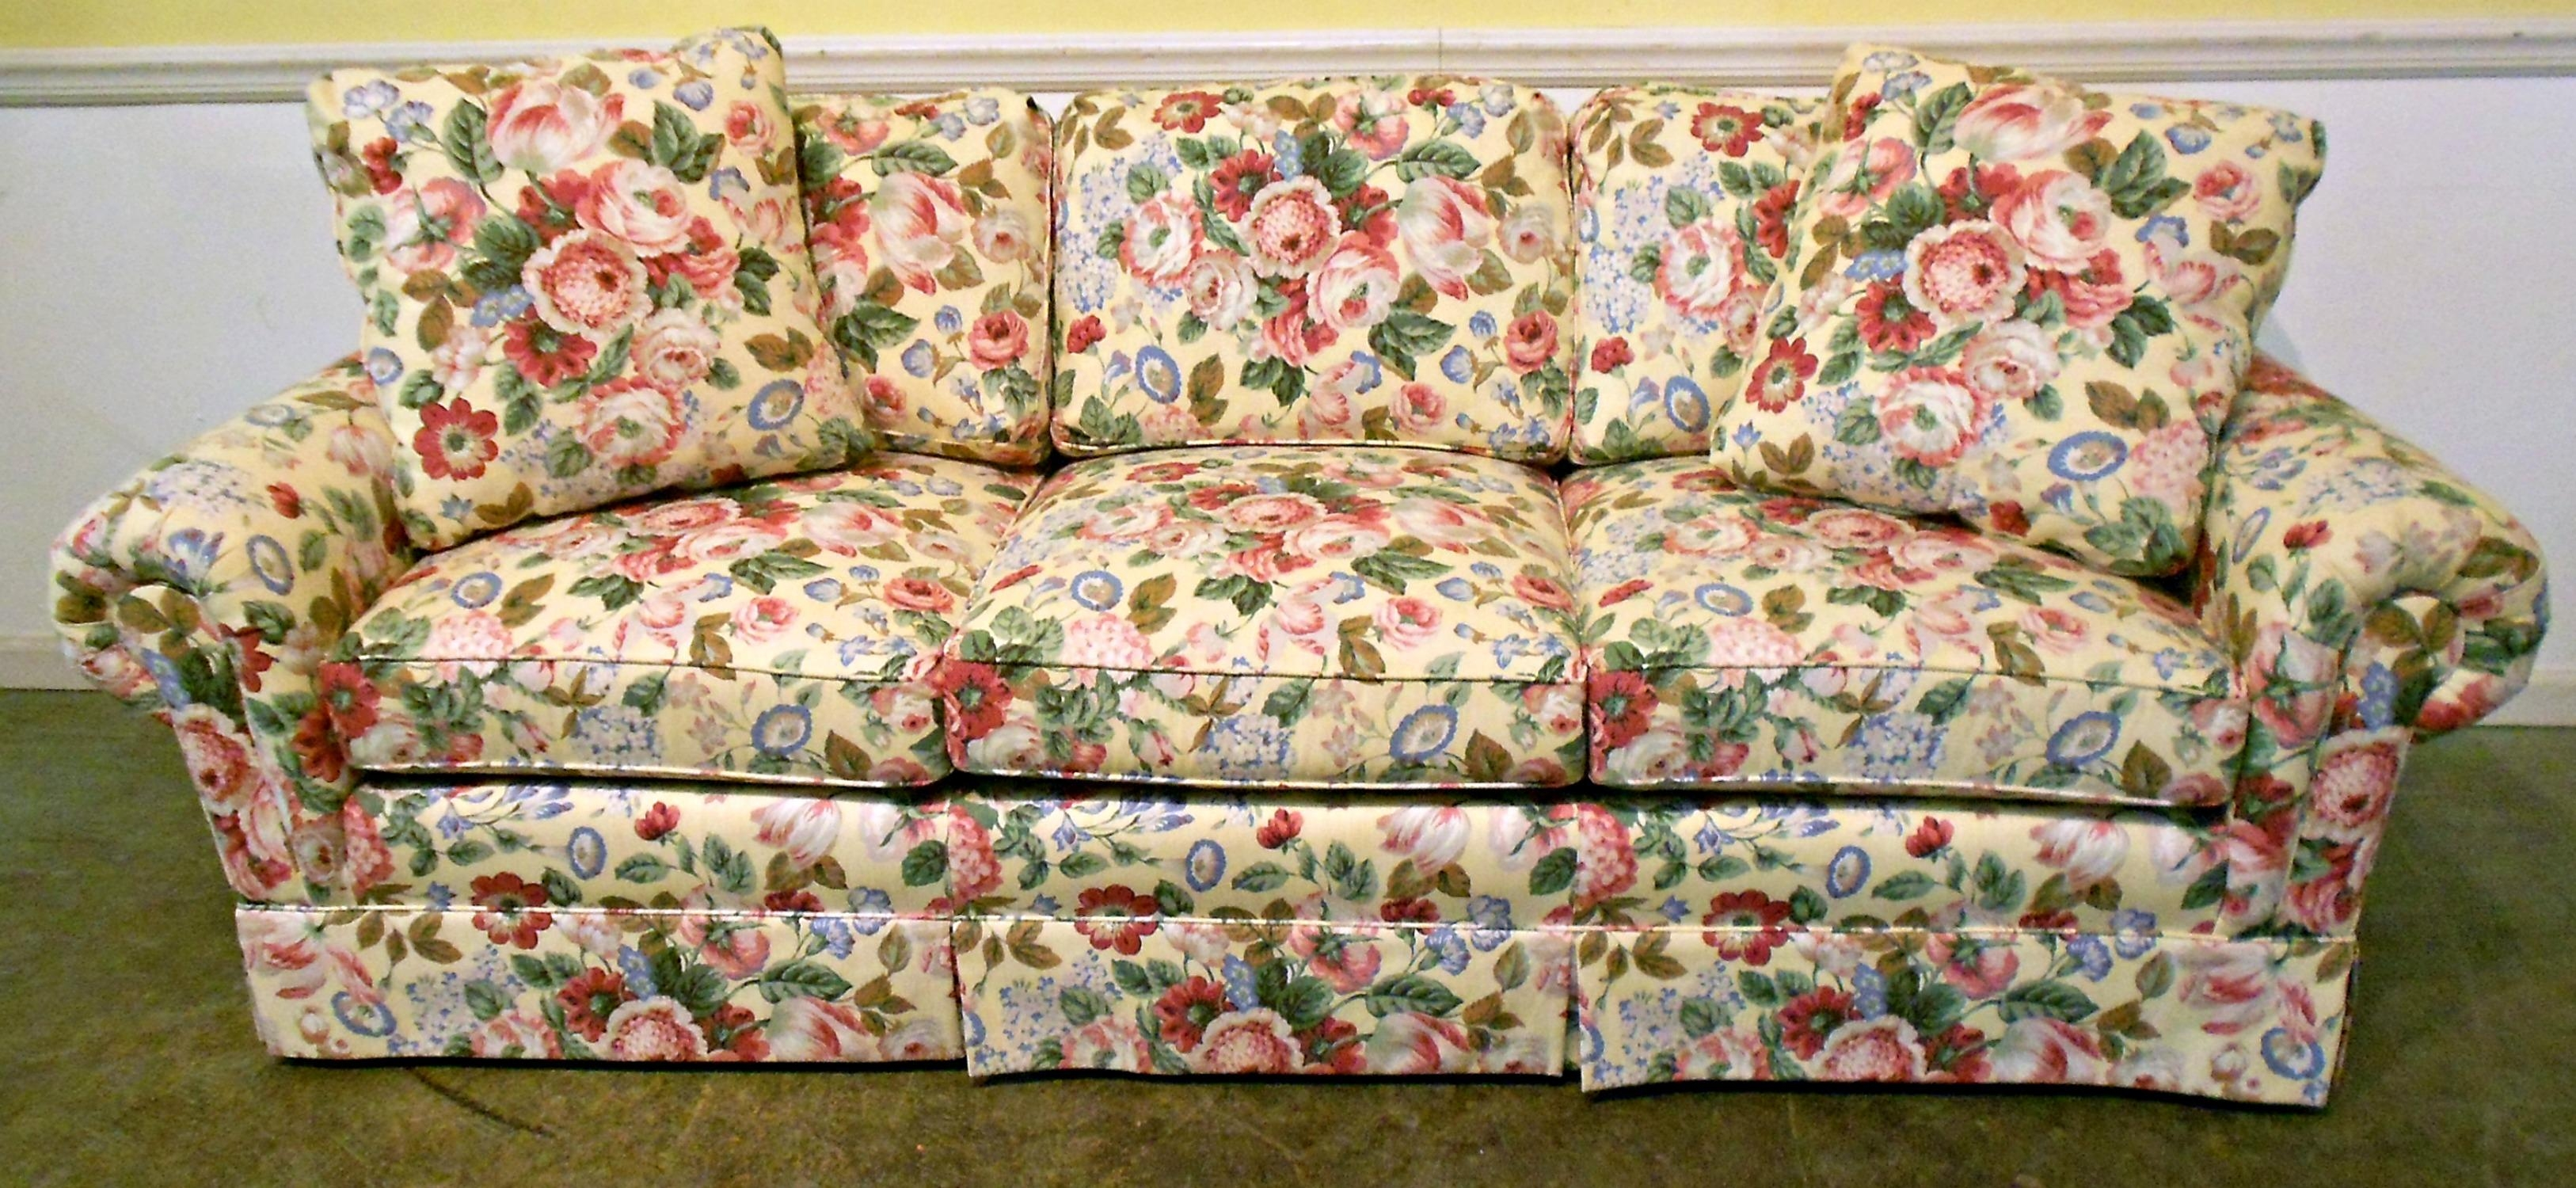 Best Modest Floral Sofas And Chairs #1658 Within Floral Sofas And Chairs (Image 4 of 20)